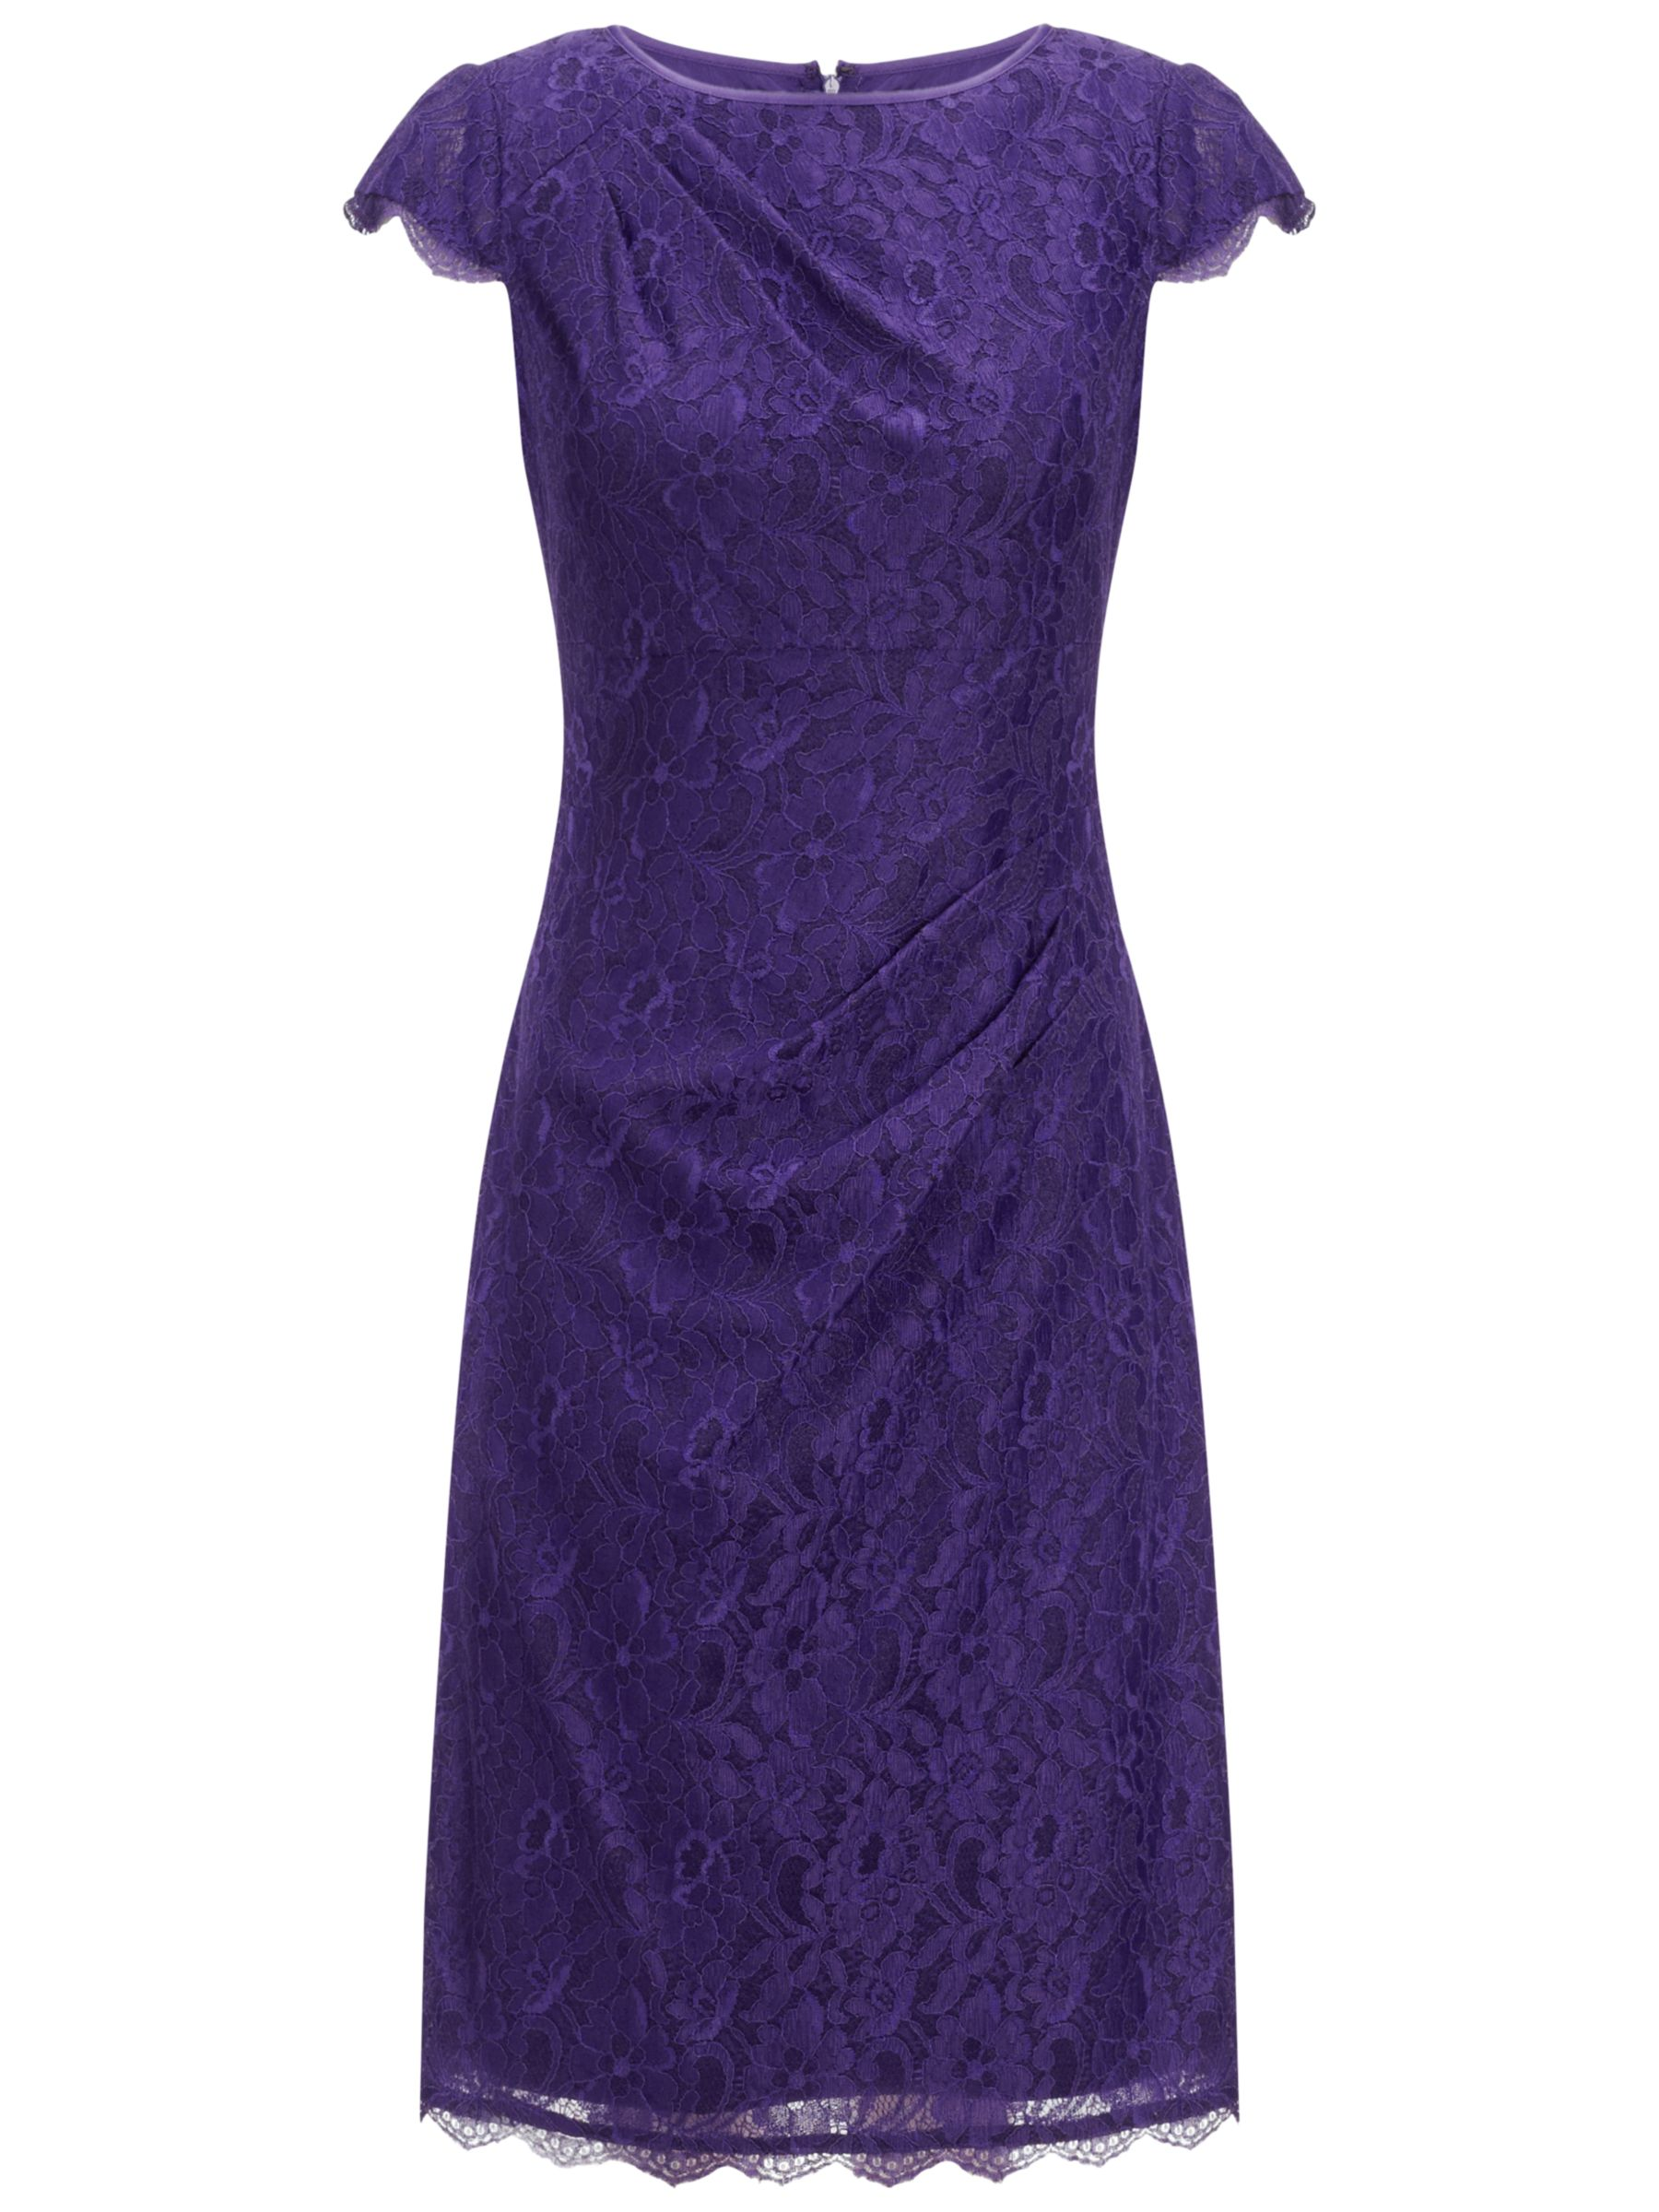 adrianna papell pleat detail lace sheath dress dark purple, adrianna, papell, pleat, detail, lace, sheath, dress, dark, purple, adrianna papell, 10|6|18|16|14|8|12, women, brands a-k, womens dresses, special offers, womenswear offers, womens dresses offers, gifts, wedding, wedding clothing, female guests, 1775583